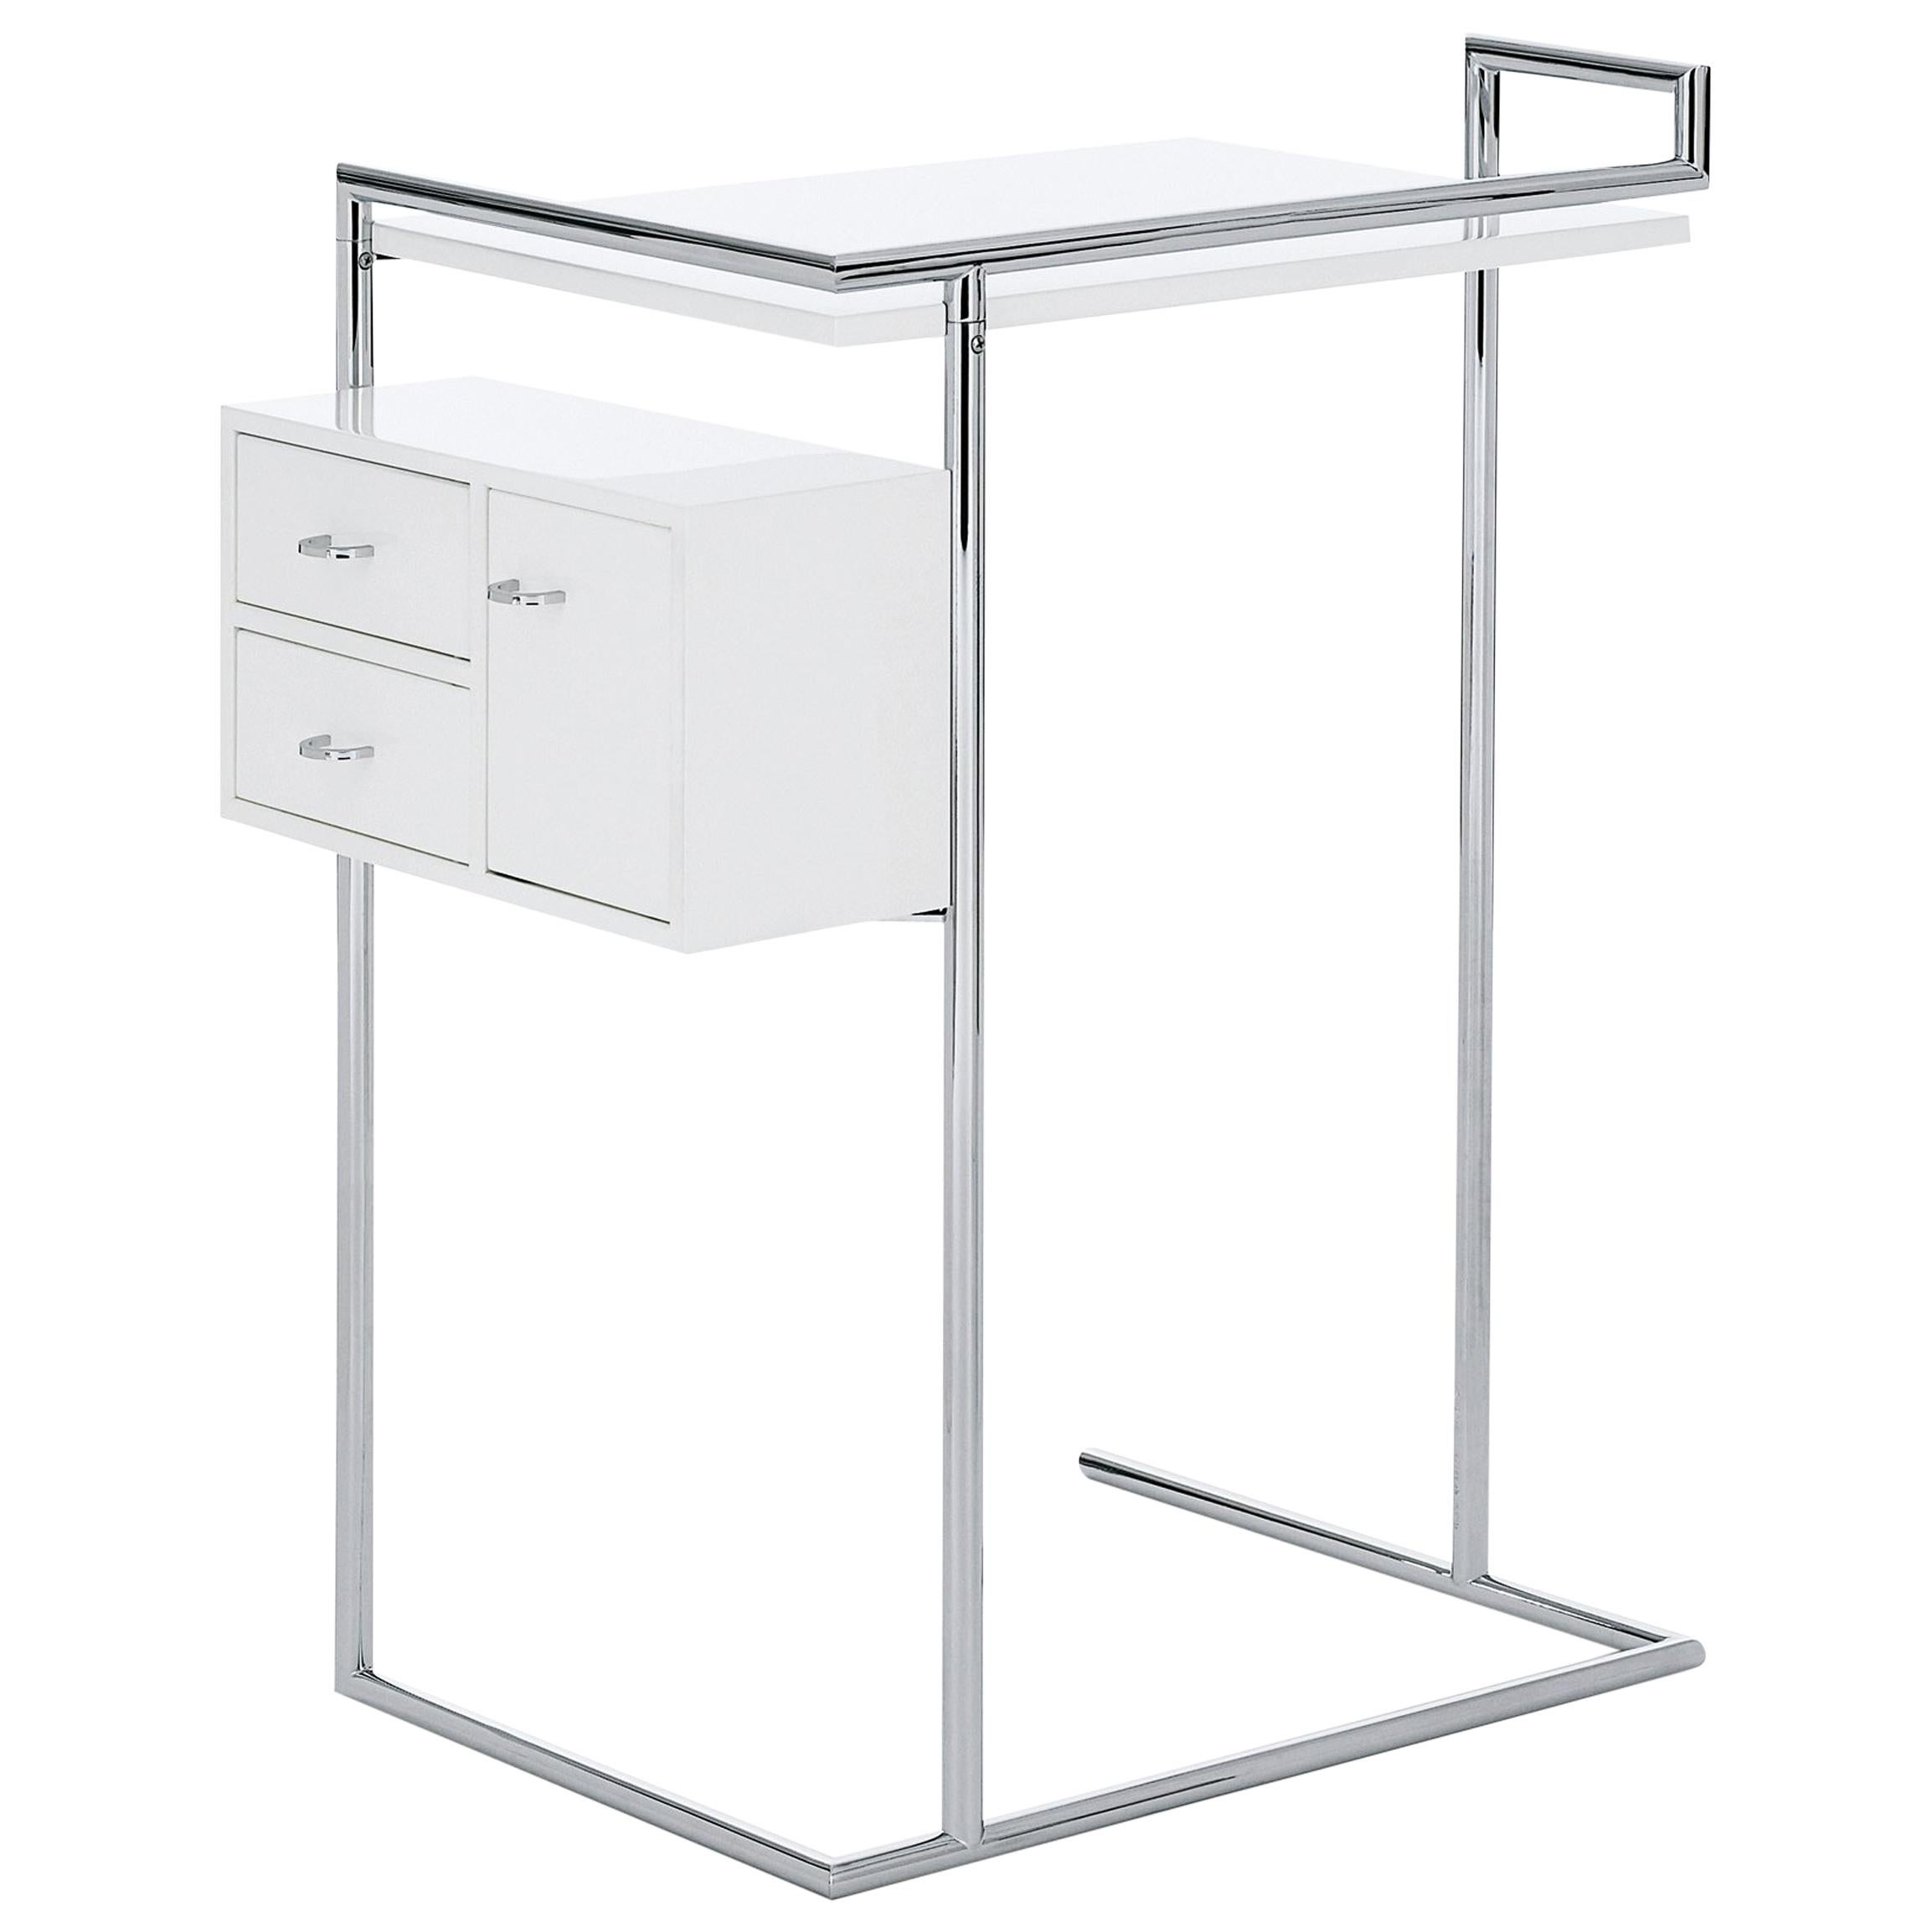 ClassiCon Petite Coiffeuse Table in White by Eileen Gray